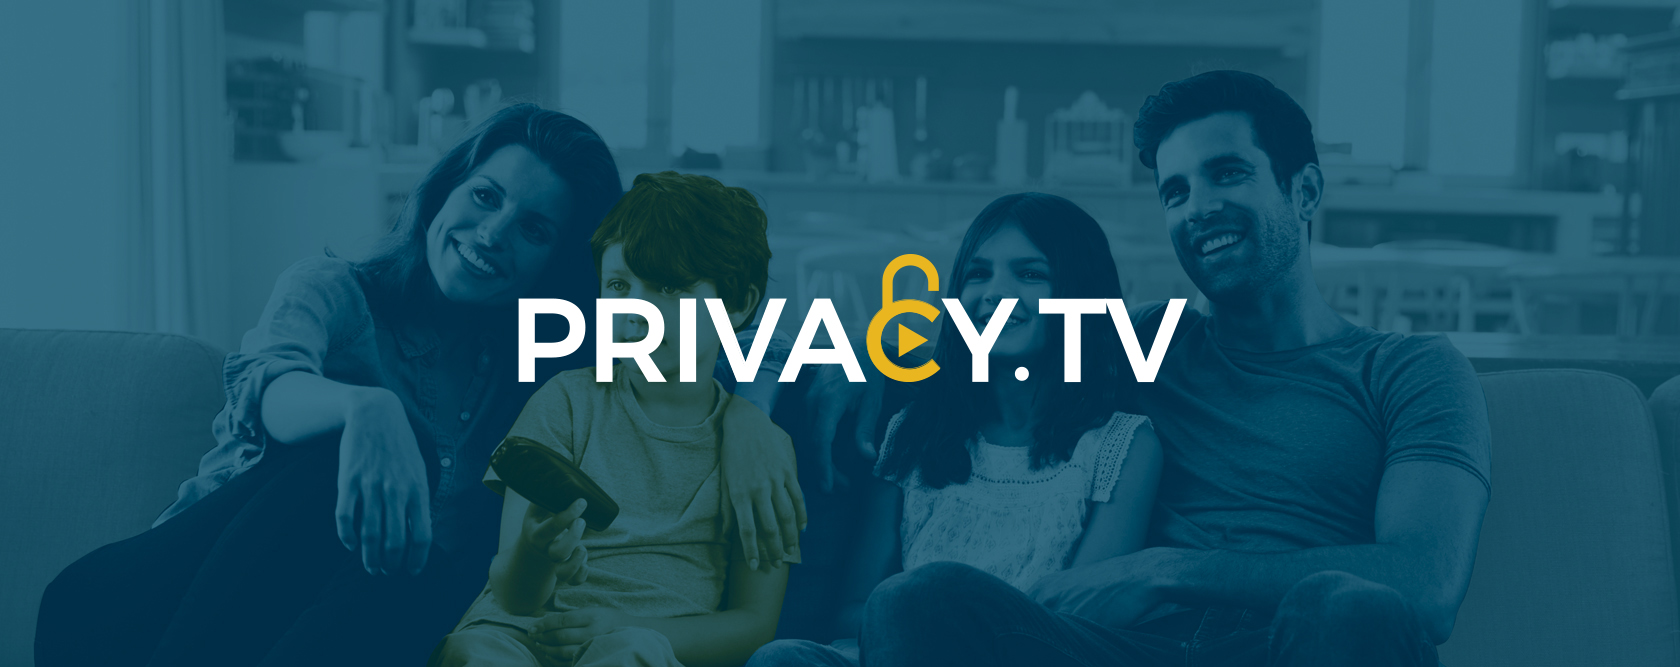 Privacy.TV Header